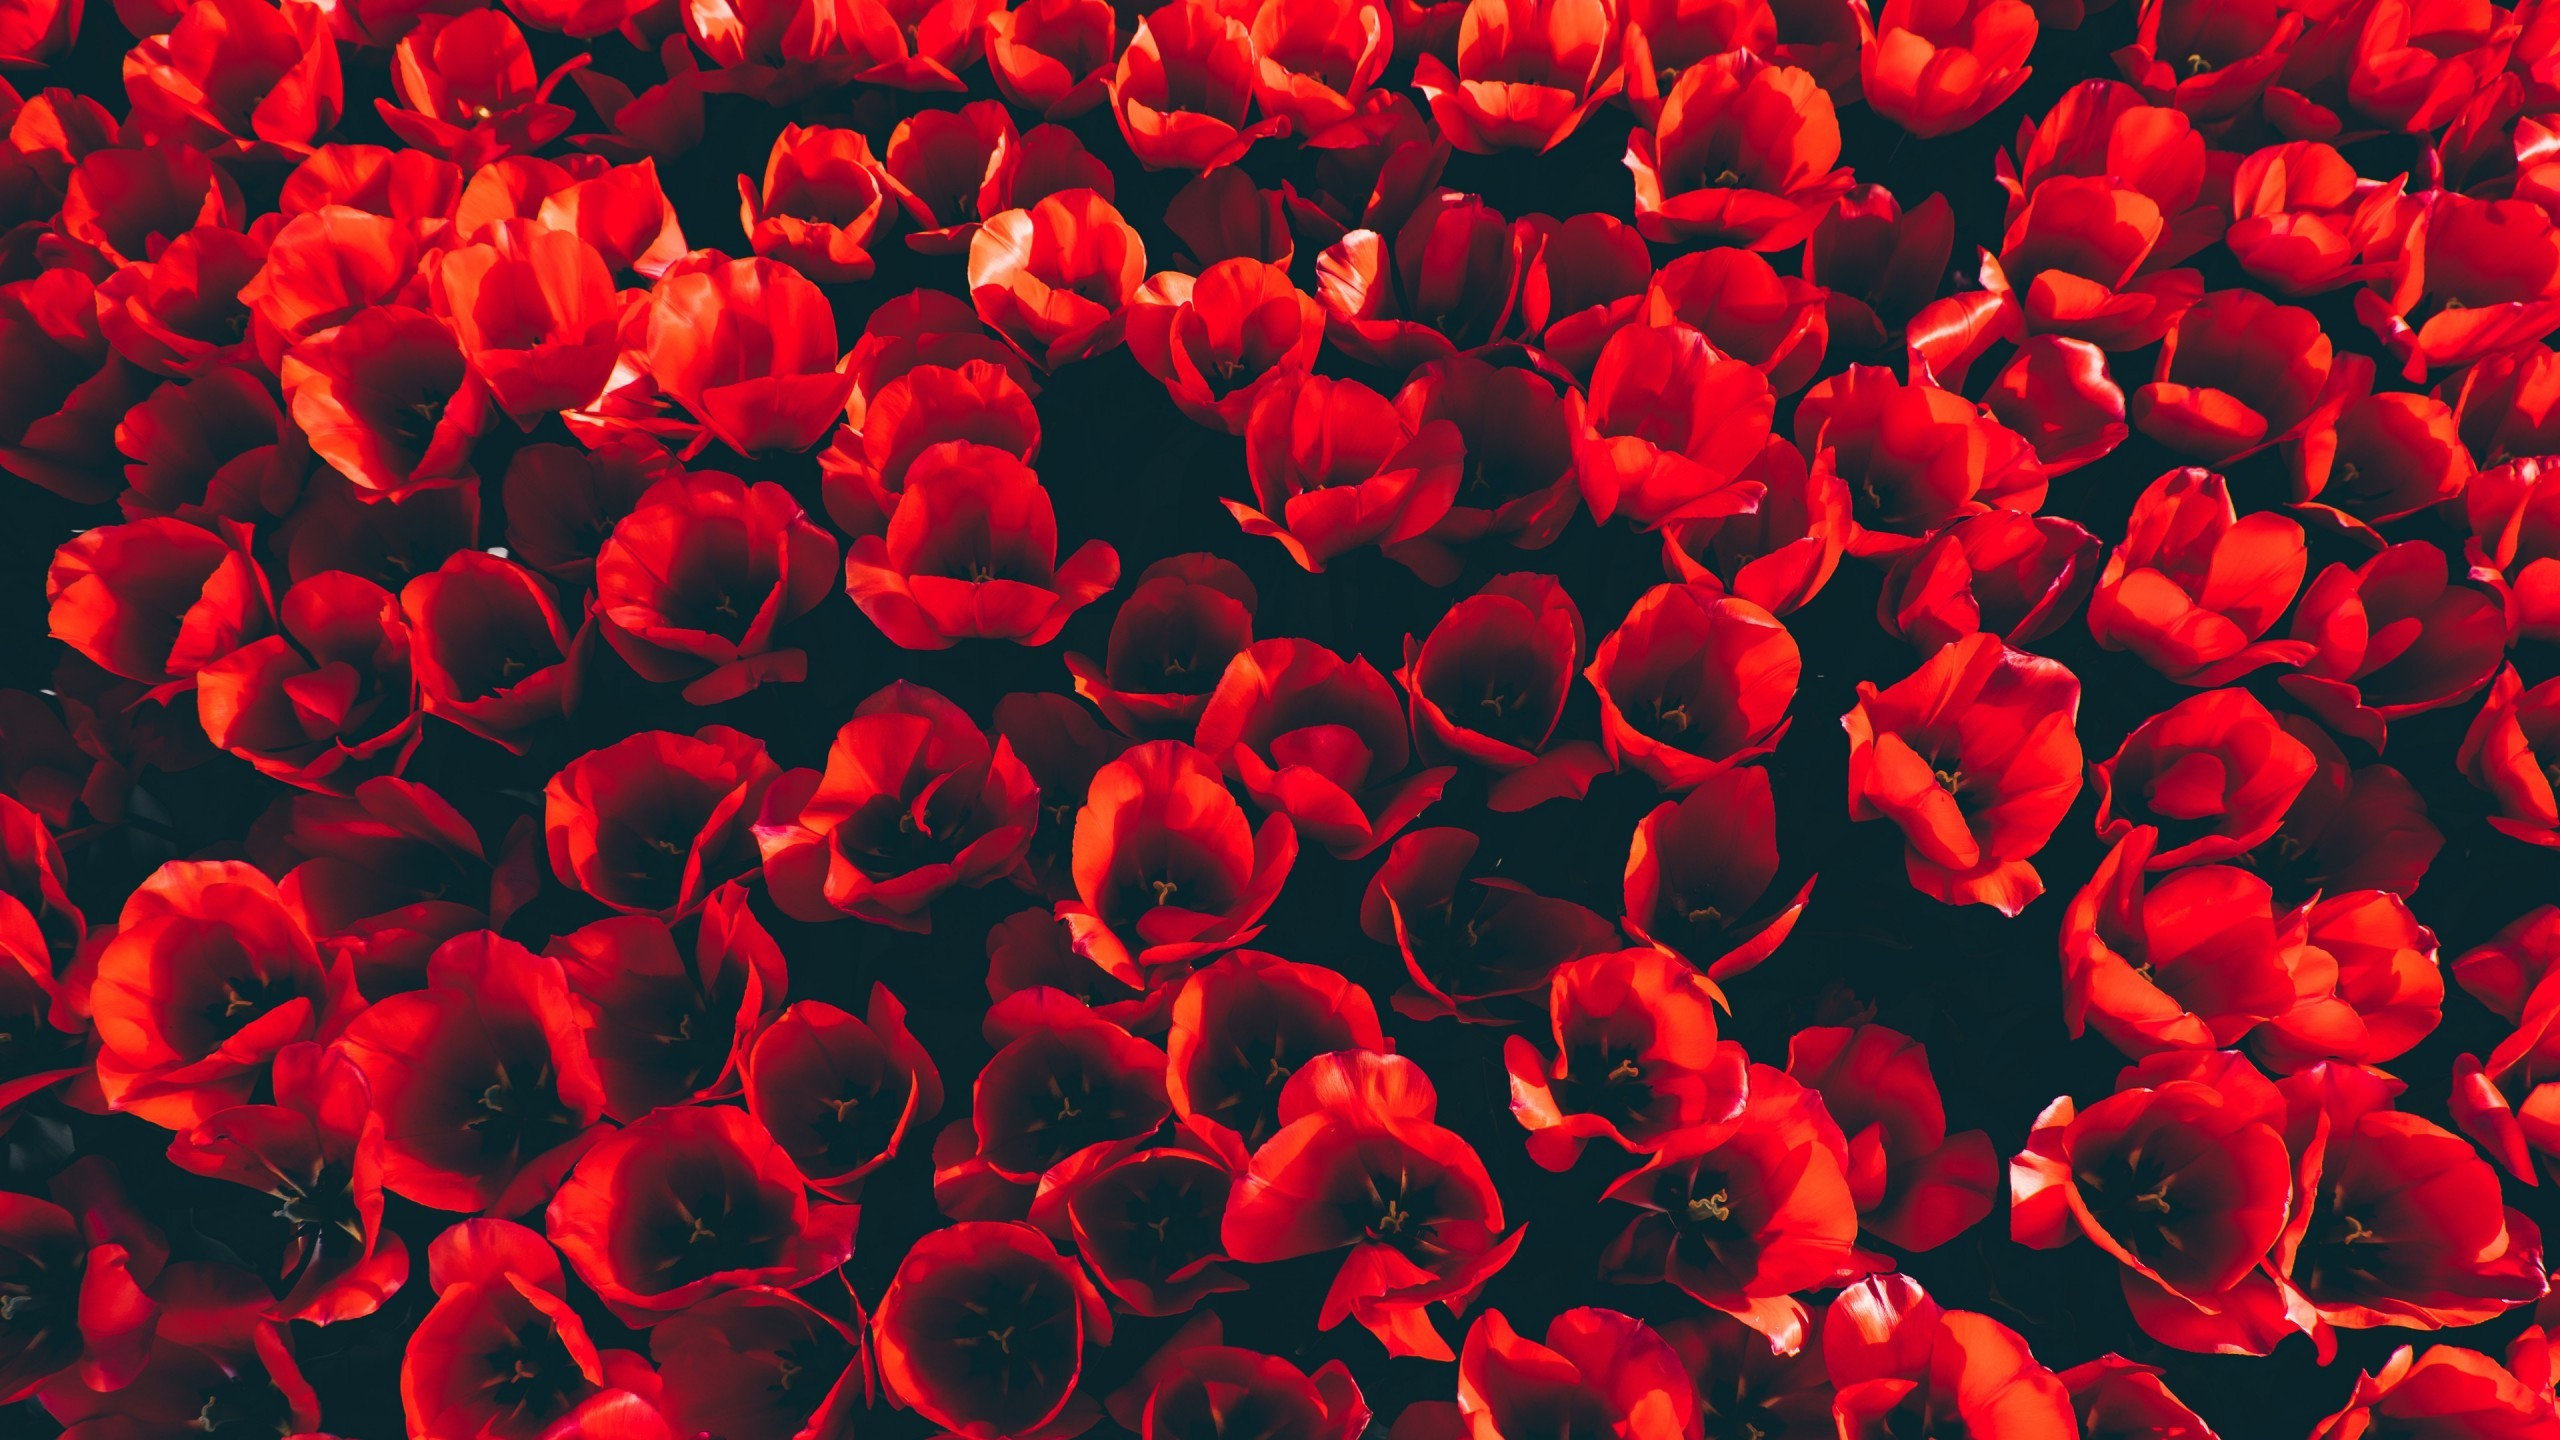 Res: 2560x1440, Flowers / Red flowers Wallpaper